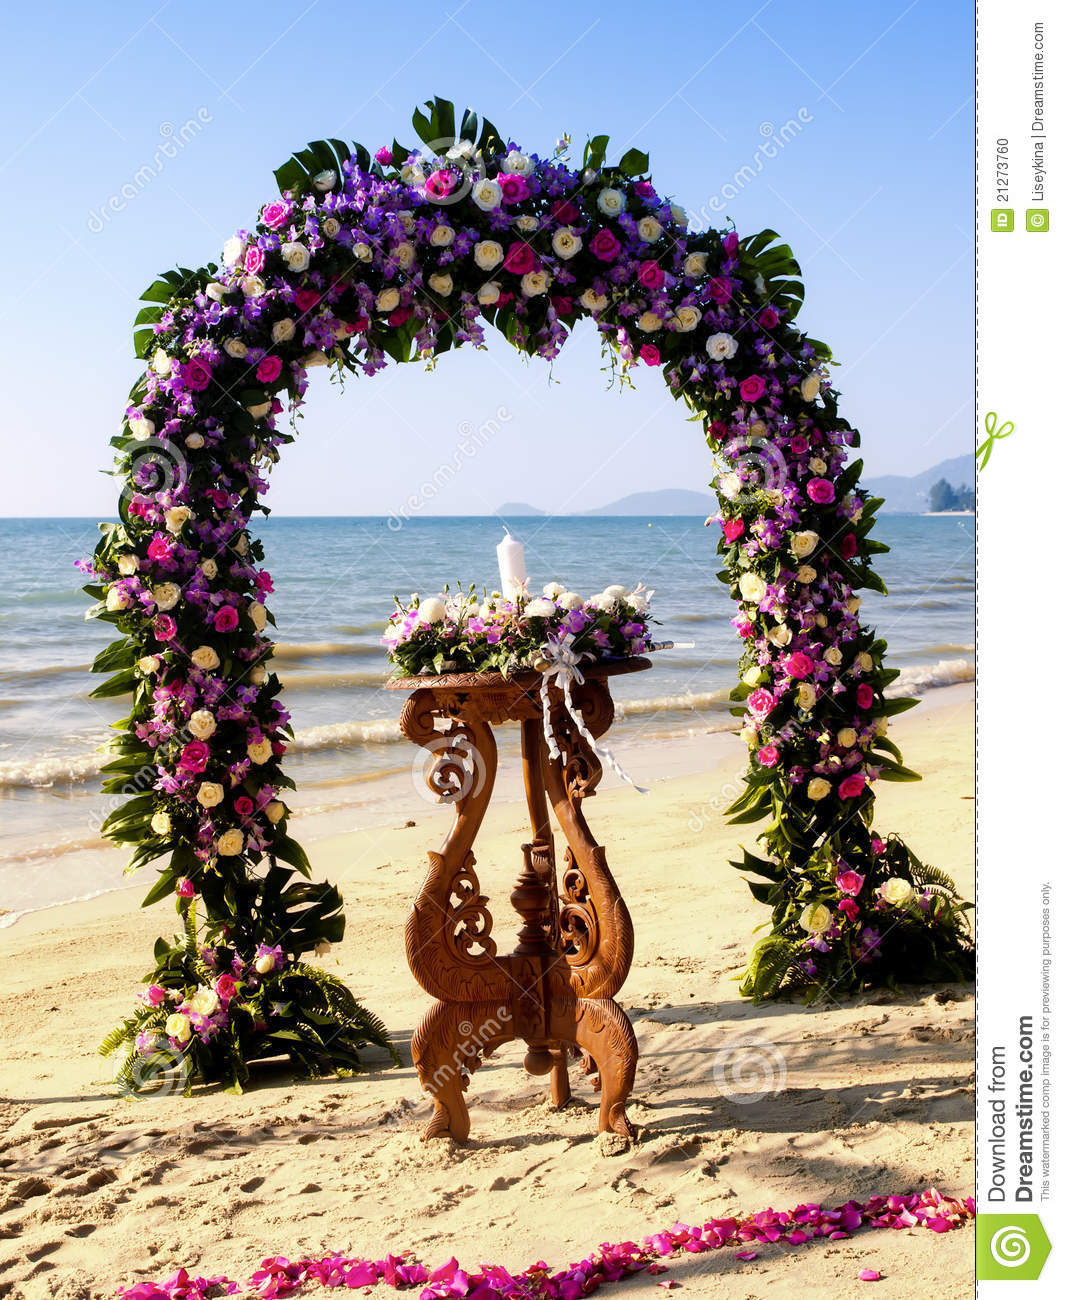 Belongil Beach Wedding Ceremony: Wedding Ceremony On A Beach Stock Photo